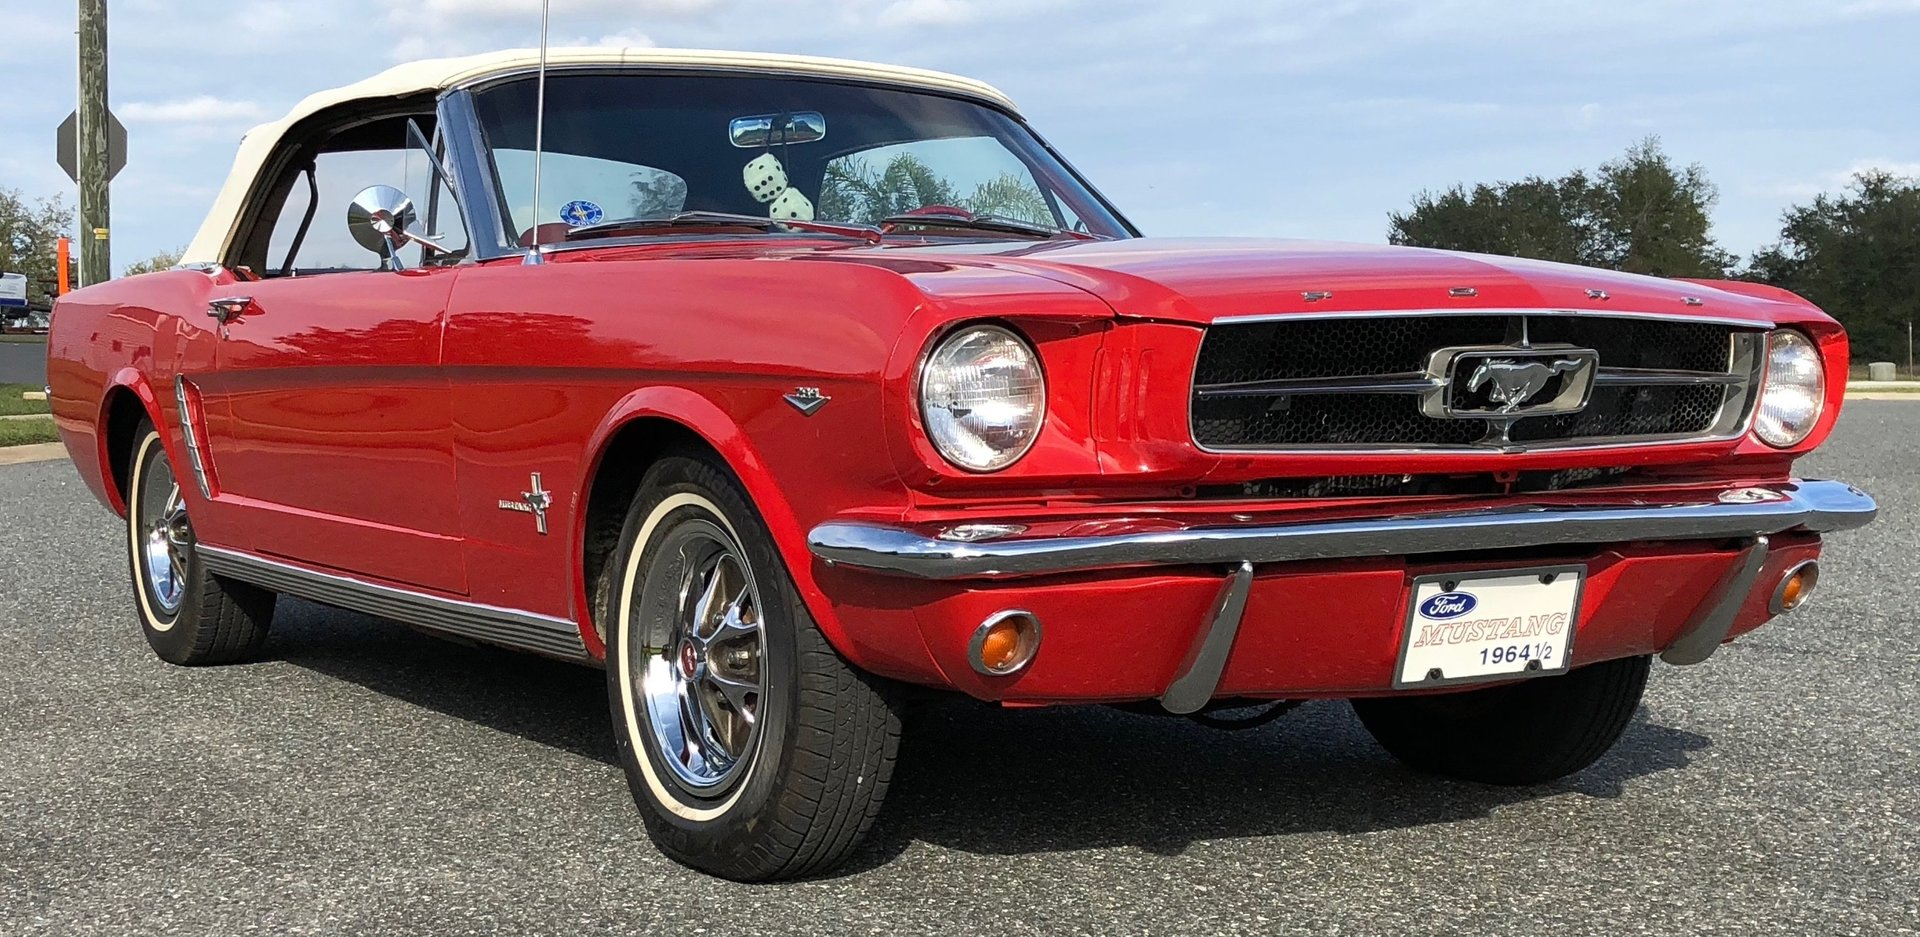 1964 Ford Mustang For Sale 77389 Mcg Mach 1